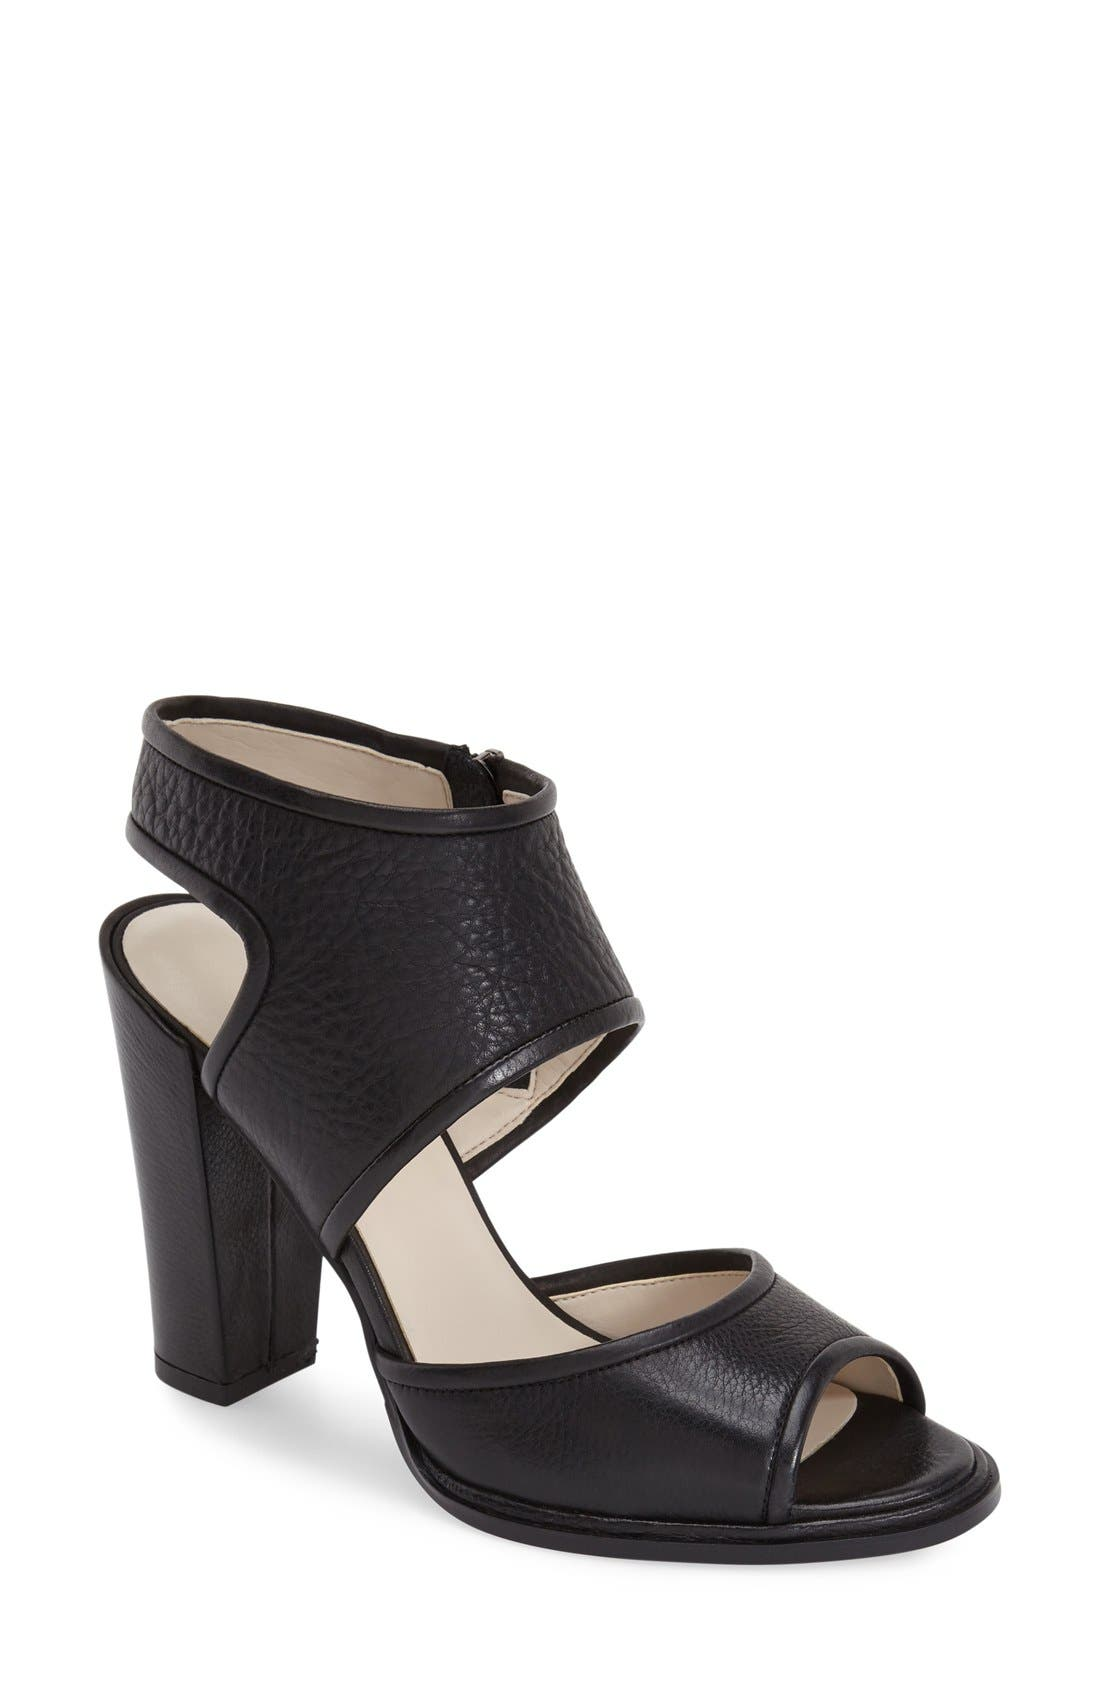 Alternate Image 1 Selected - Kenneth Cole New York 'Stacy' Sandal (Women)